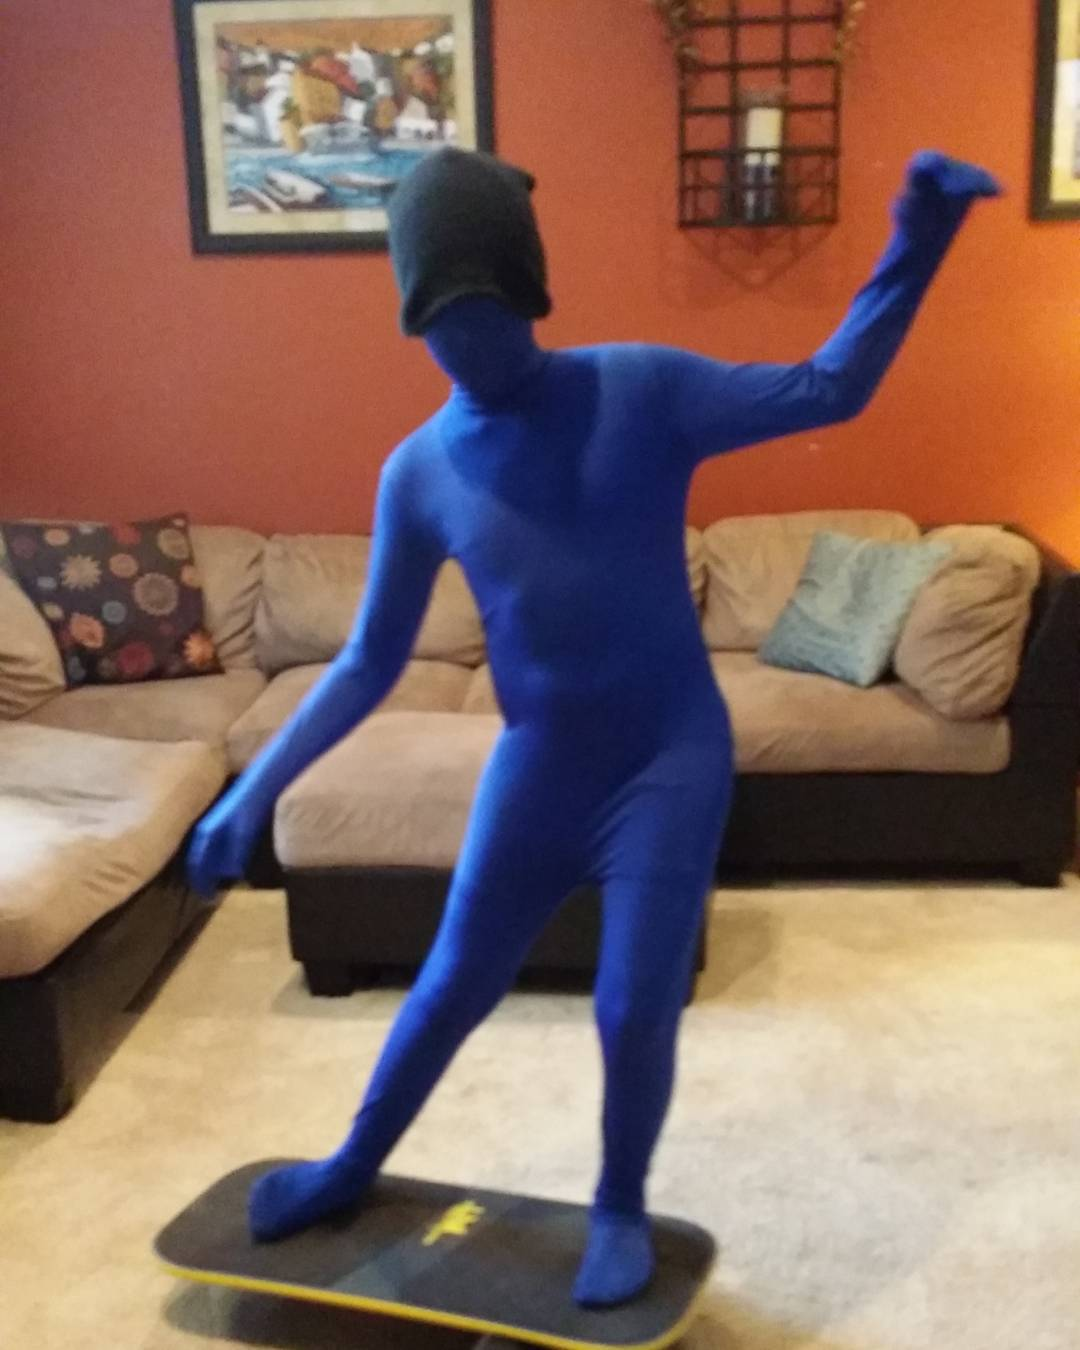 The blue man wrapping up a  Revbalace Halloween 2015! #halloween2015 #bluemangroup #revbalance #findyourbalance #balanceboards #madeinusa